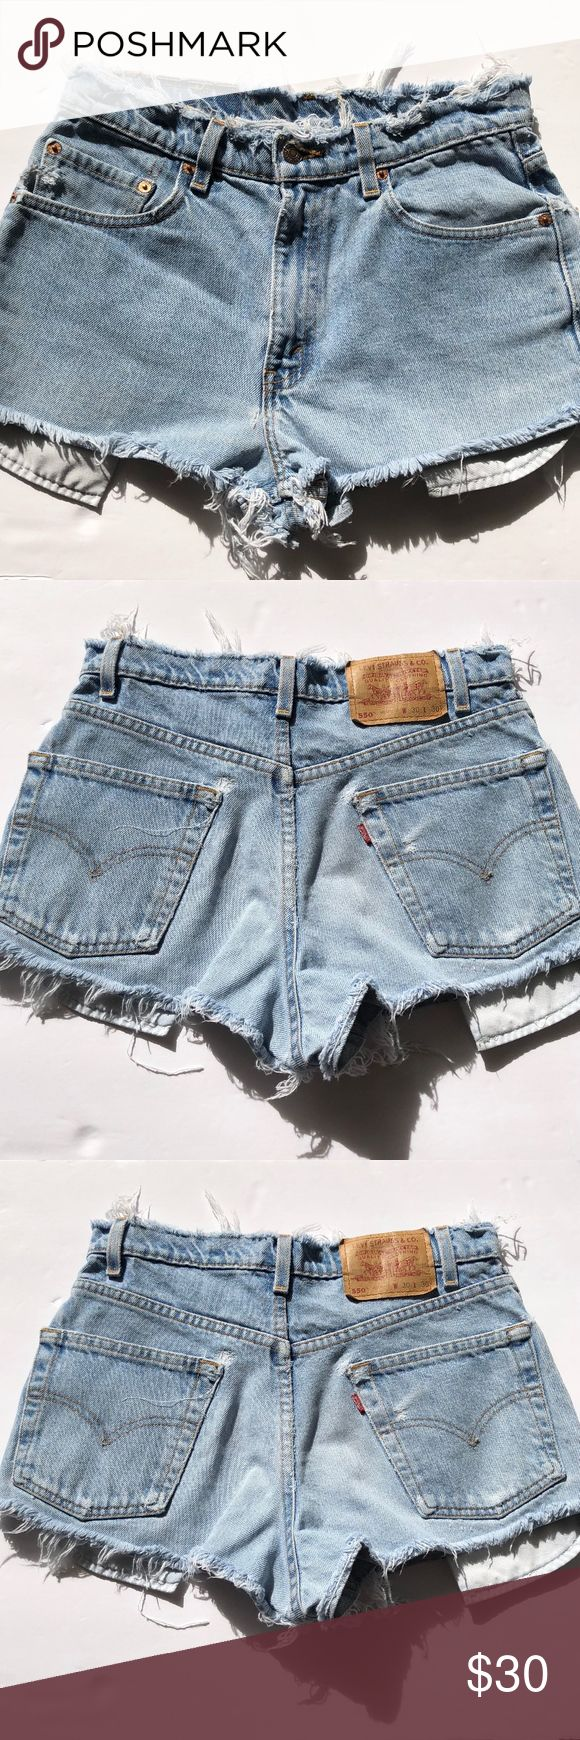 """High-Waste """"Cut-off"""" Levi Denim Shorts Cute short shorts, hand cut from Levi 505 Denim. PLEASE READ --->These are a sized as 30 but fit more like a 27/28 even 26/27<--PLEASE READ  They are short but cover your cheeks! Great for festivals and beach days. Get them now and be ready for your summer adventures! Levi's Shorts Jean Shorts"""